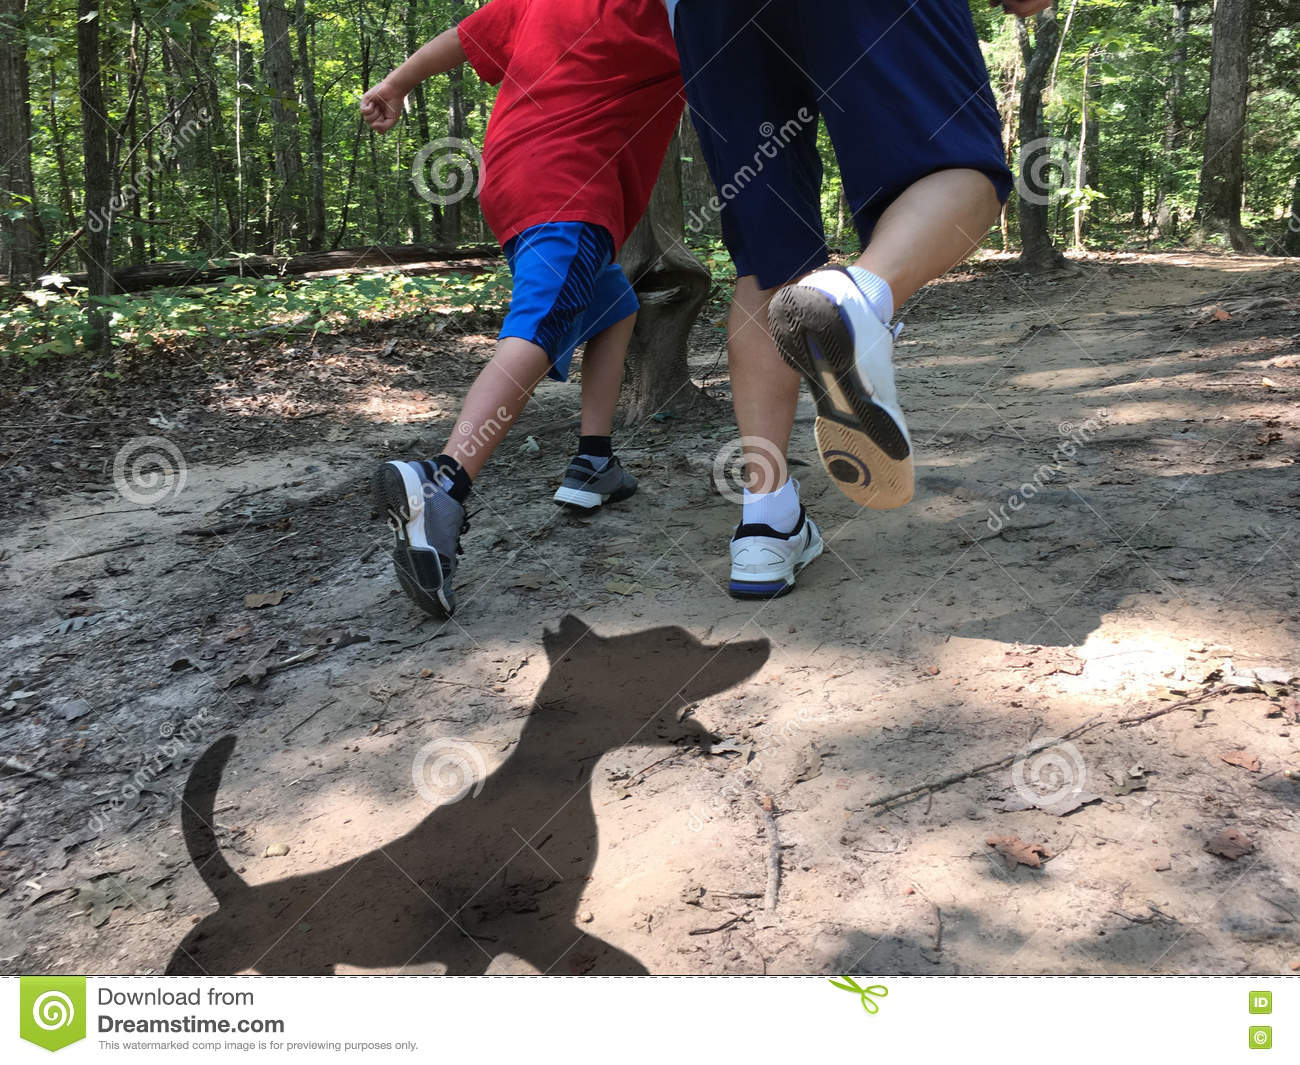 Dog shadow chasing father and son